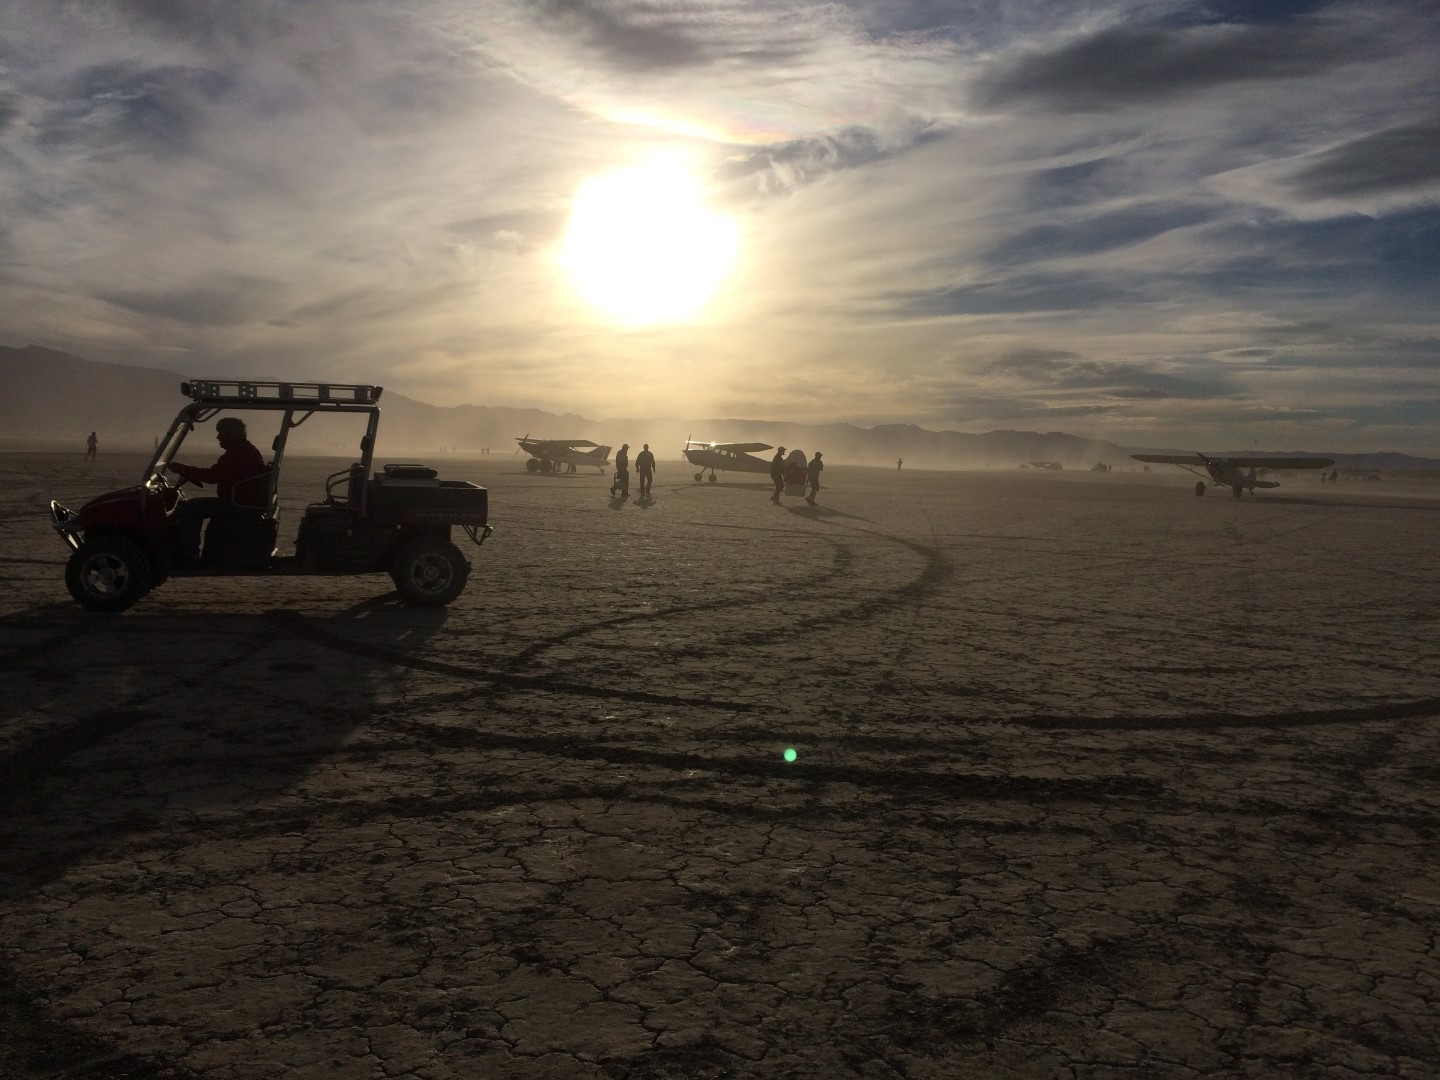 Winds or prop wash kick up playa dust, but that's part of being out in the desert. Not everyone flies in; some people drive in with RVs, pickups, or trailers that also pack golf carts or ATVs. Photo by Nadine Burak.